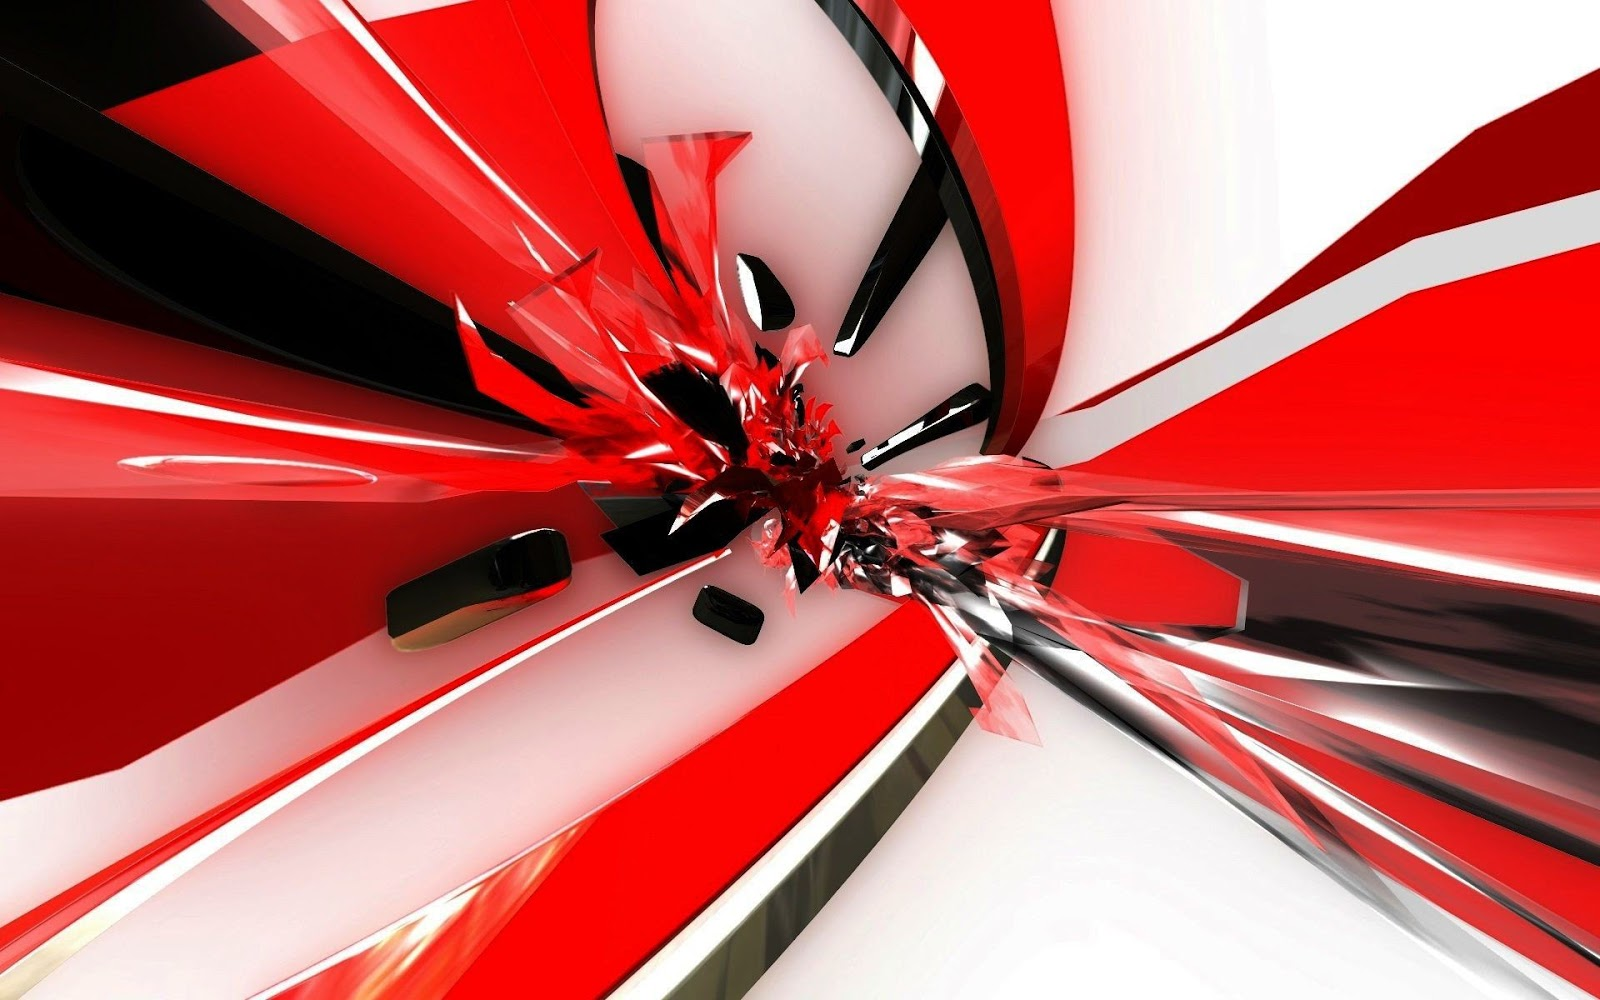 Red Abstract Wallpaper Pack No:1 + Slideshow Video ...